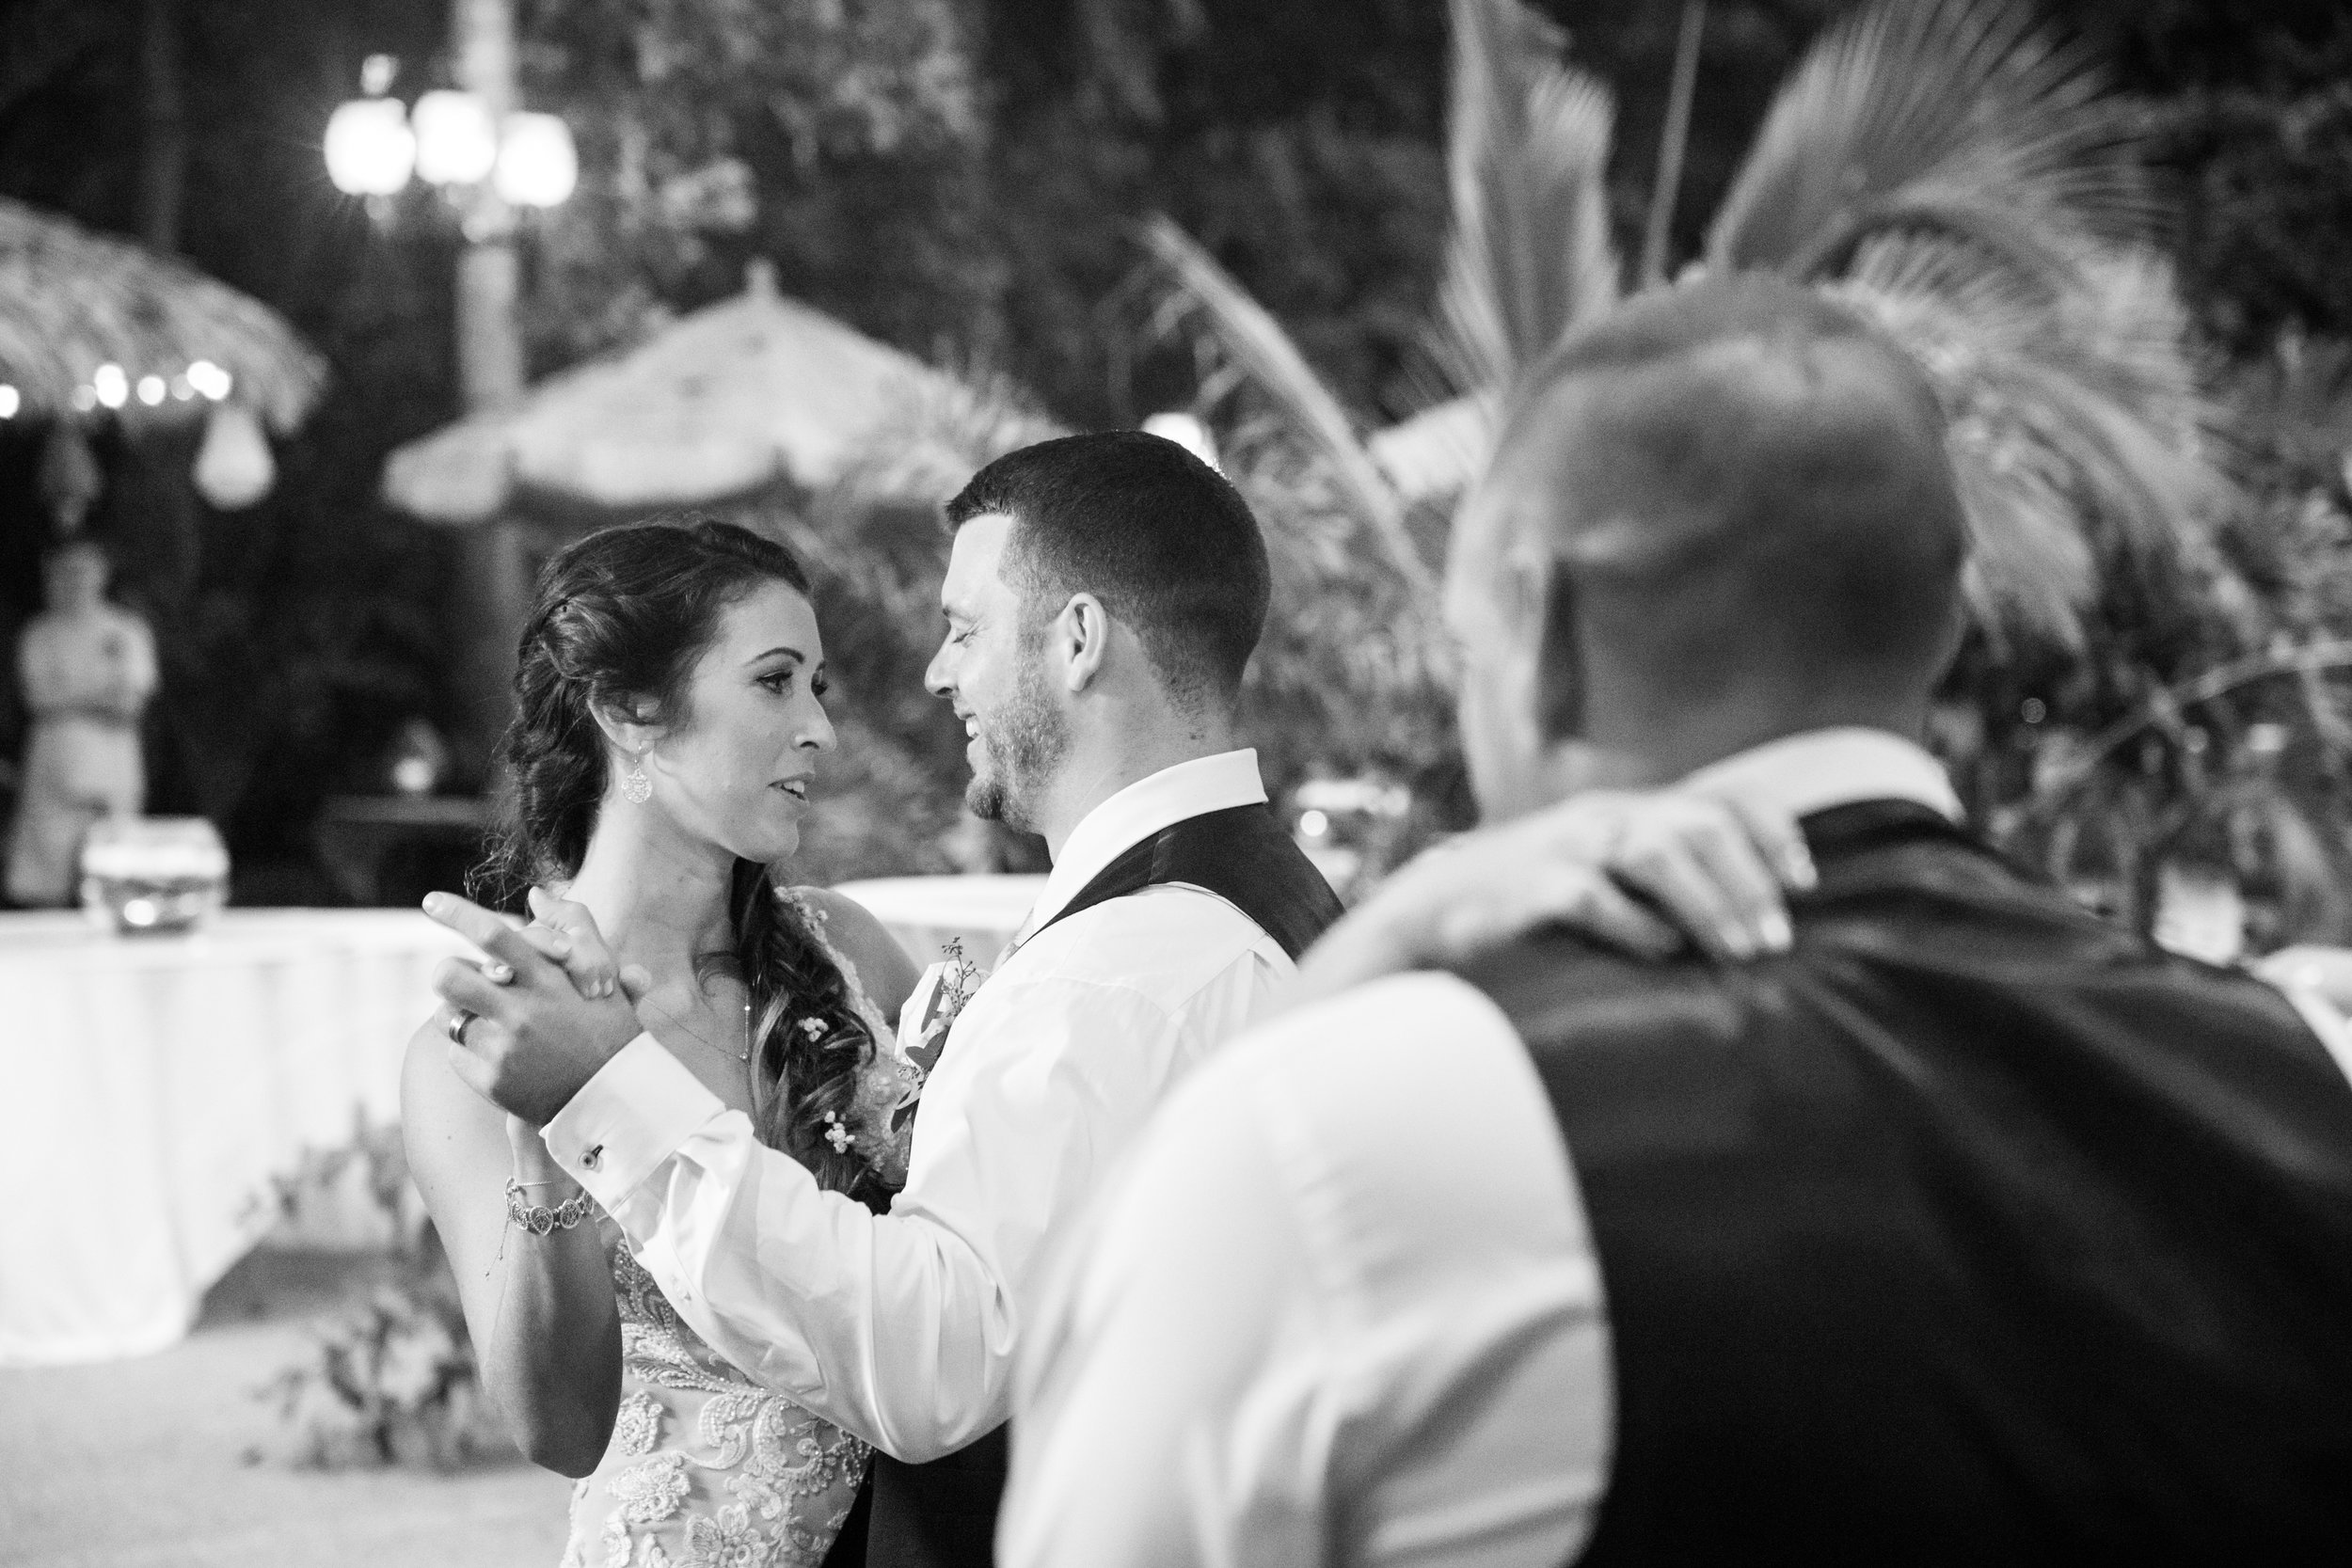 The couple share their first dance with other couple's on the dance floor.